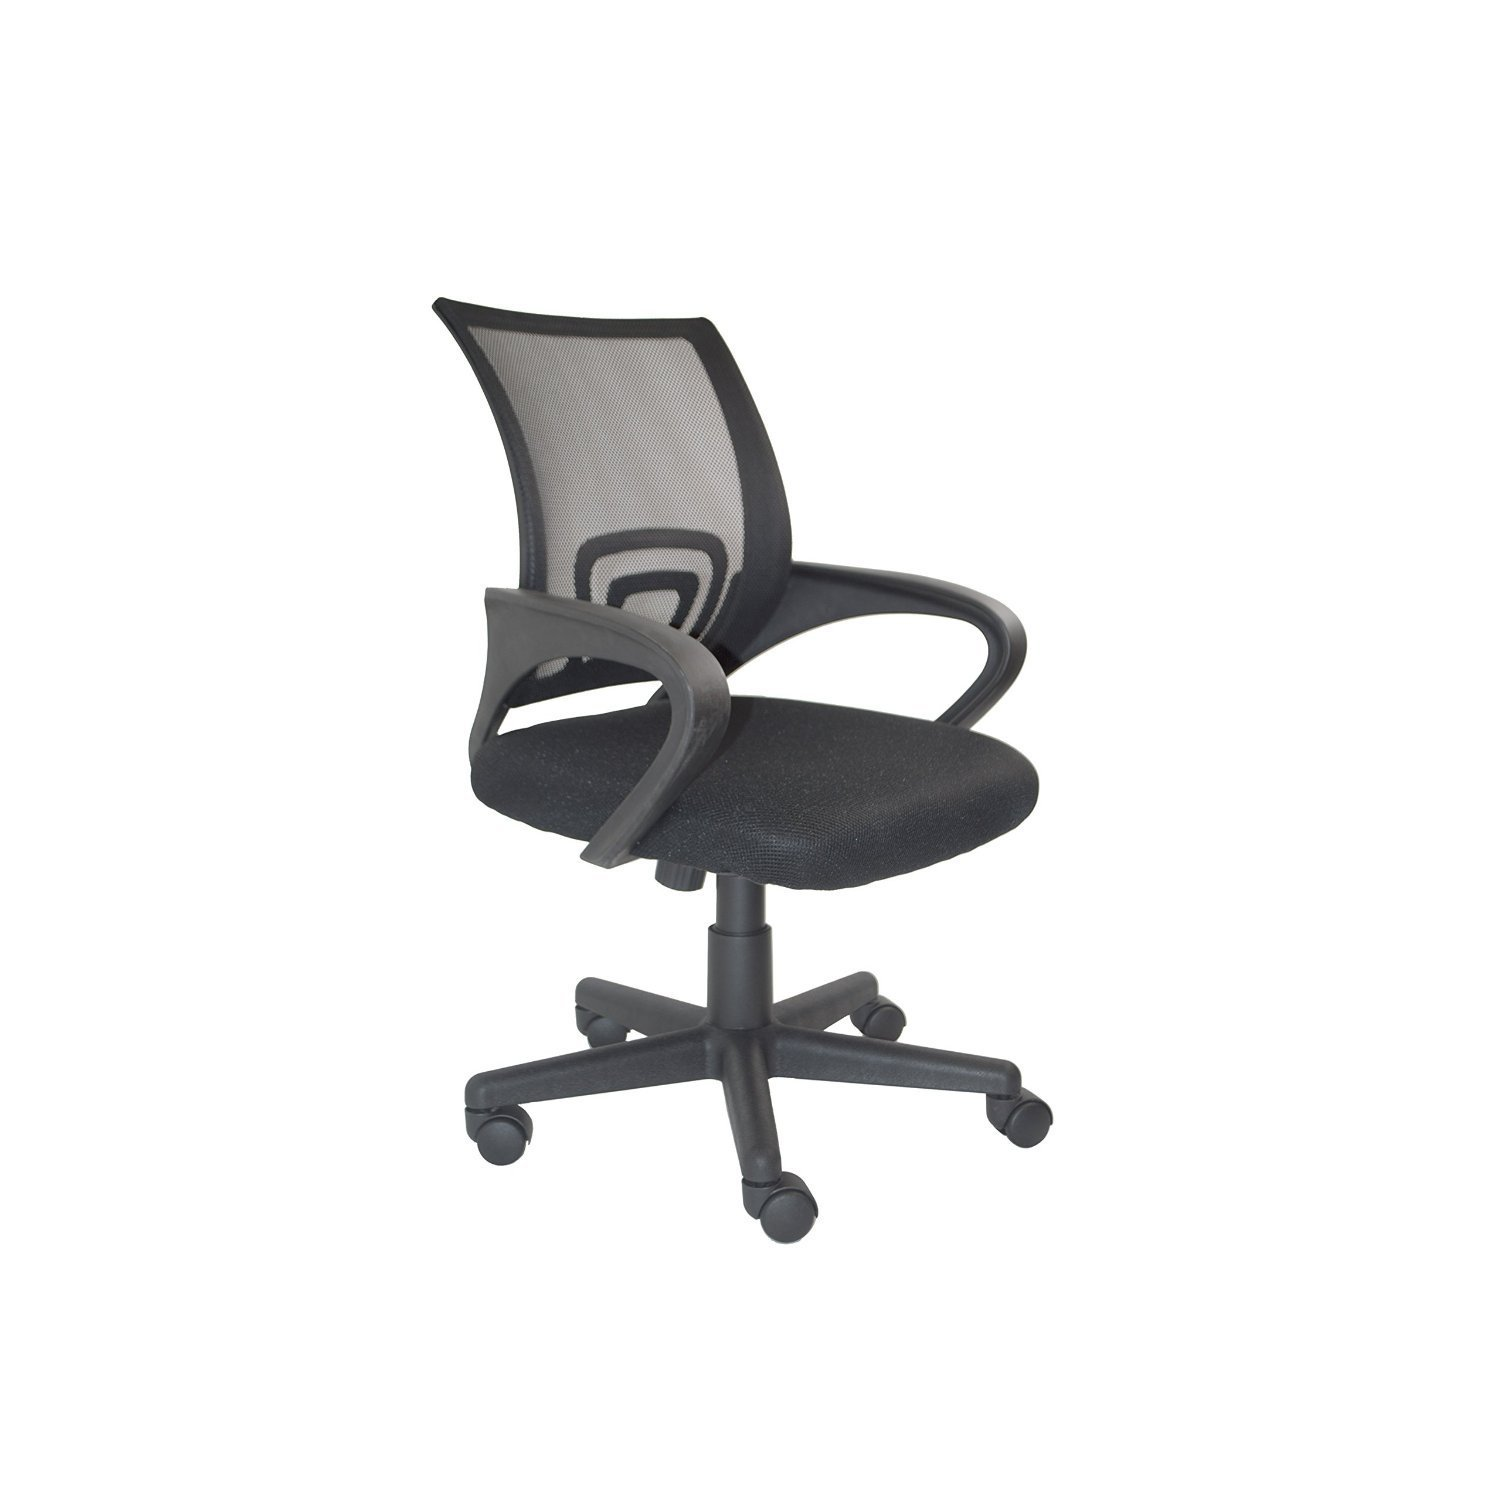 ALEKO ALCM813BL Ergonomic Office Chair, High Back Mesh Chair